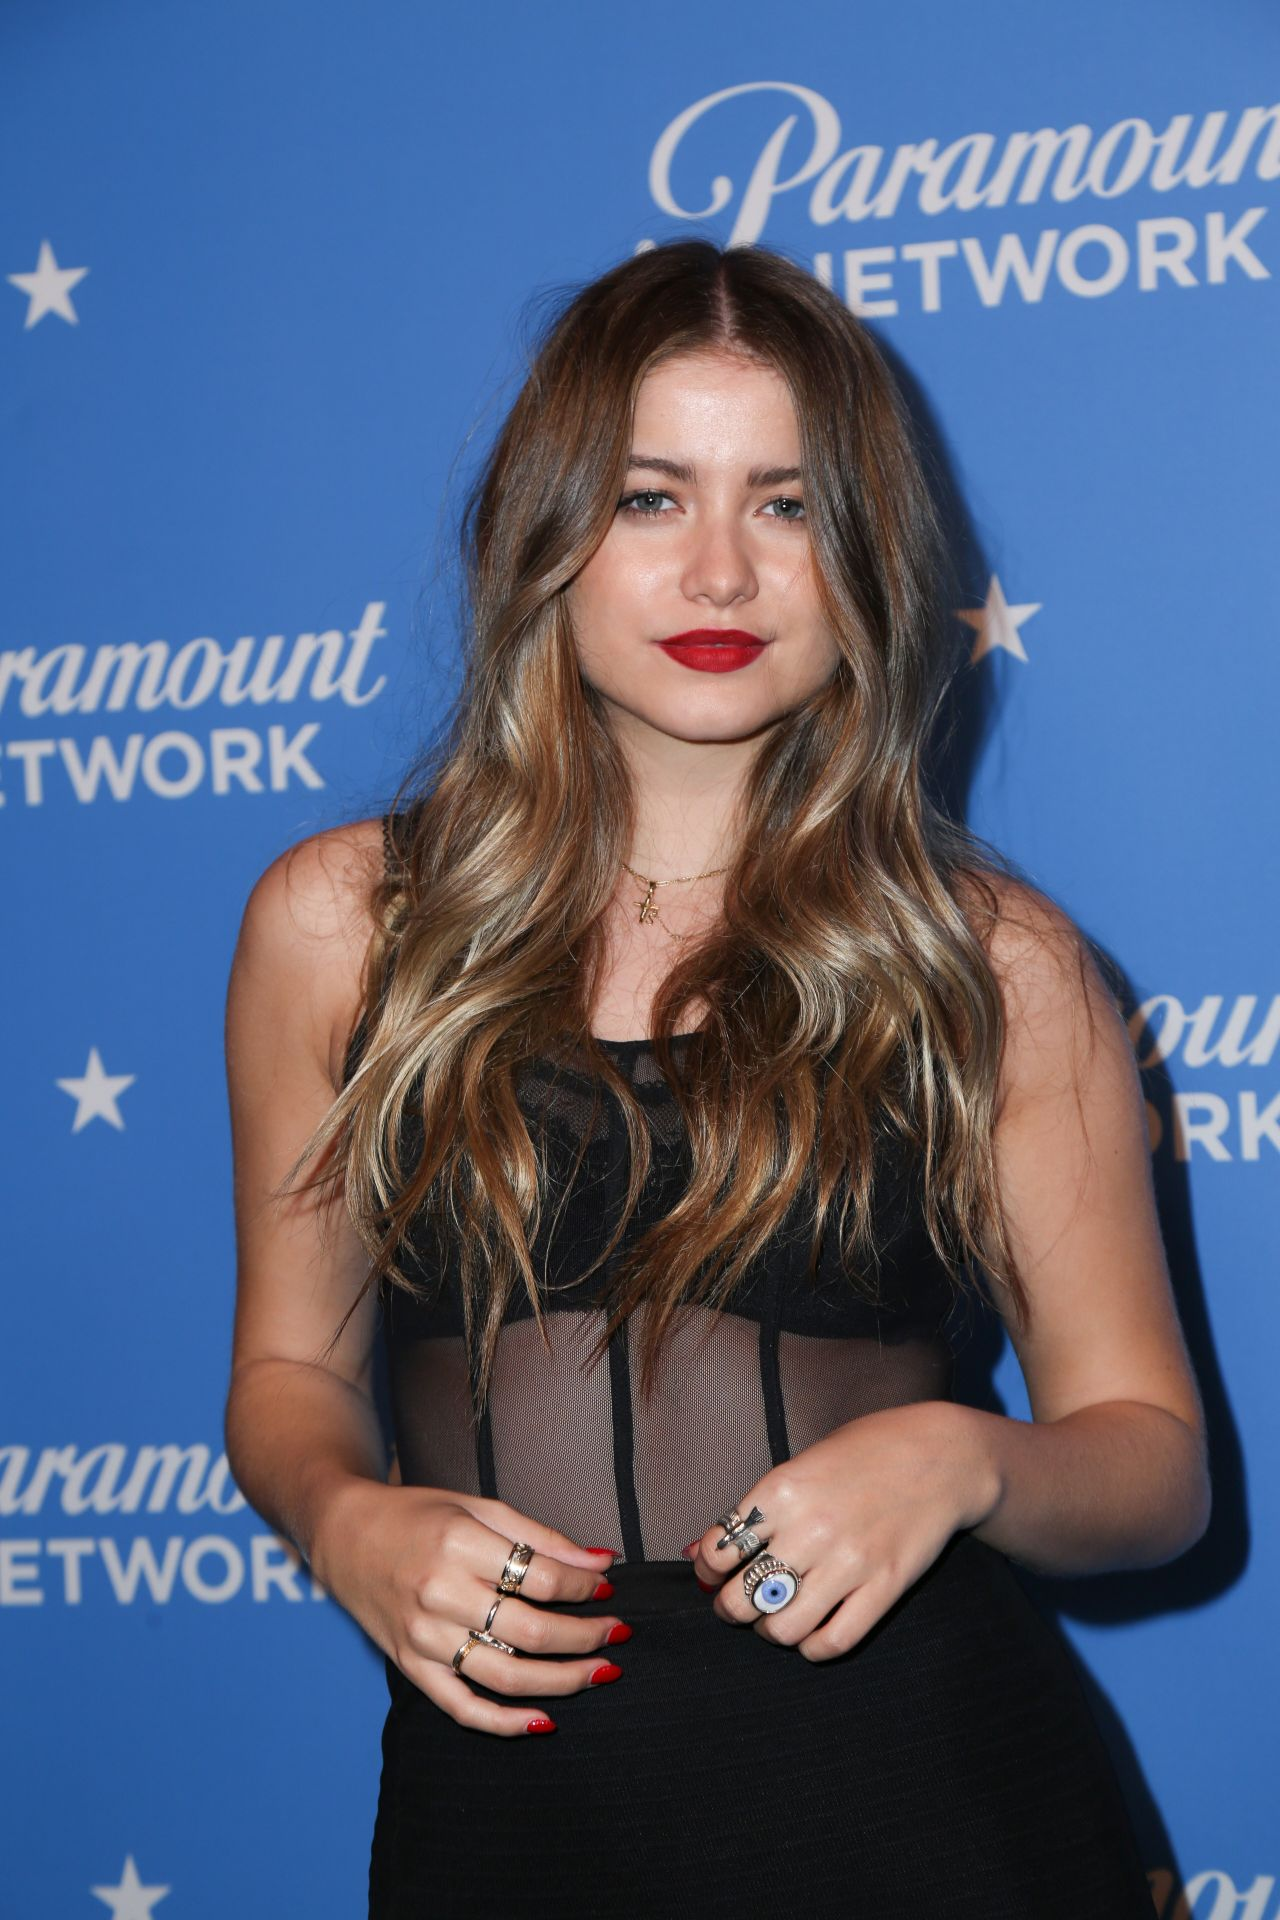 Sofia Reyes Paramount Network Launch Party In La